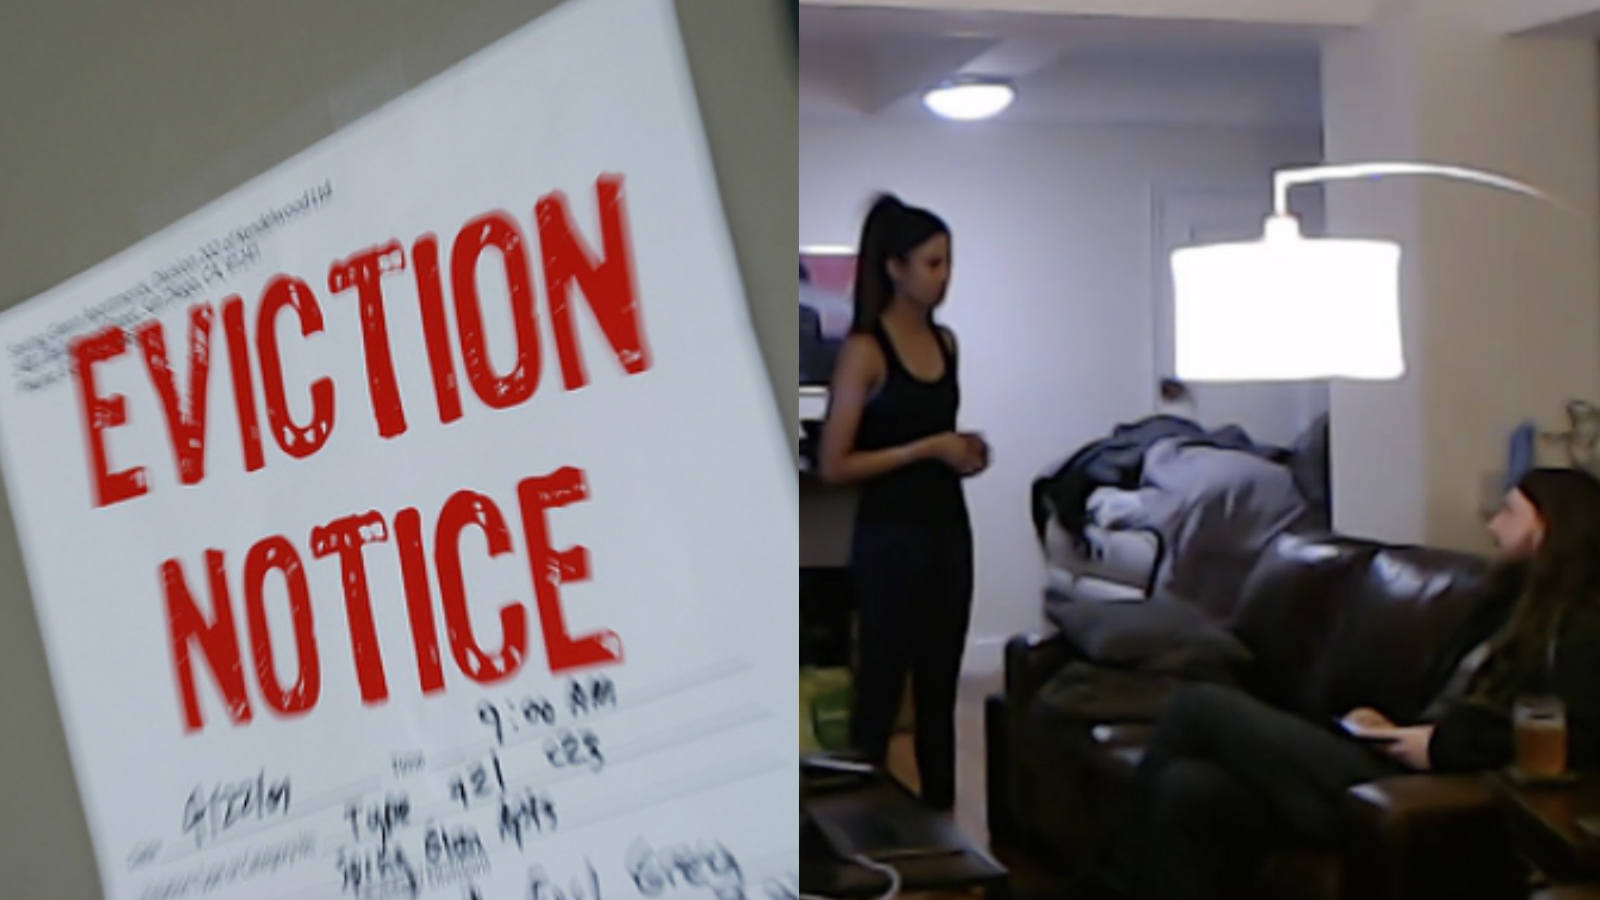 Streamer evicting roommate with an eviction sign